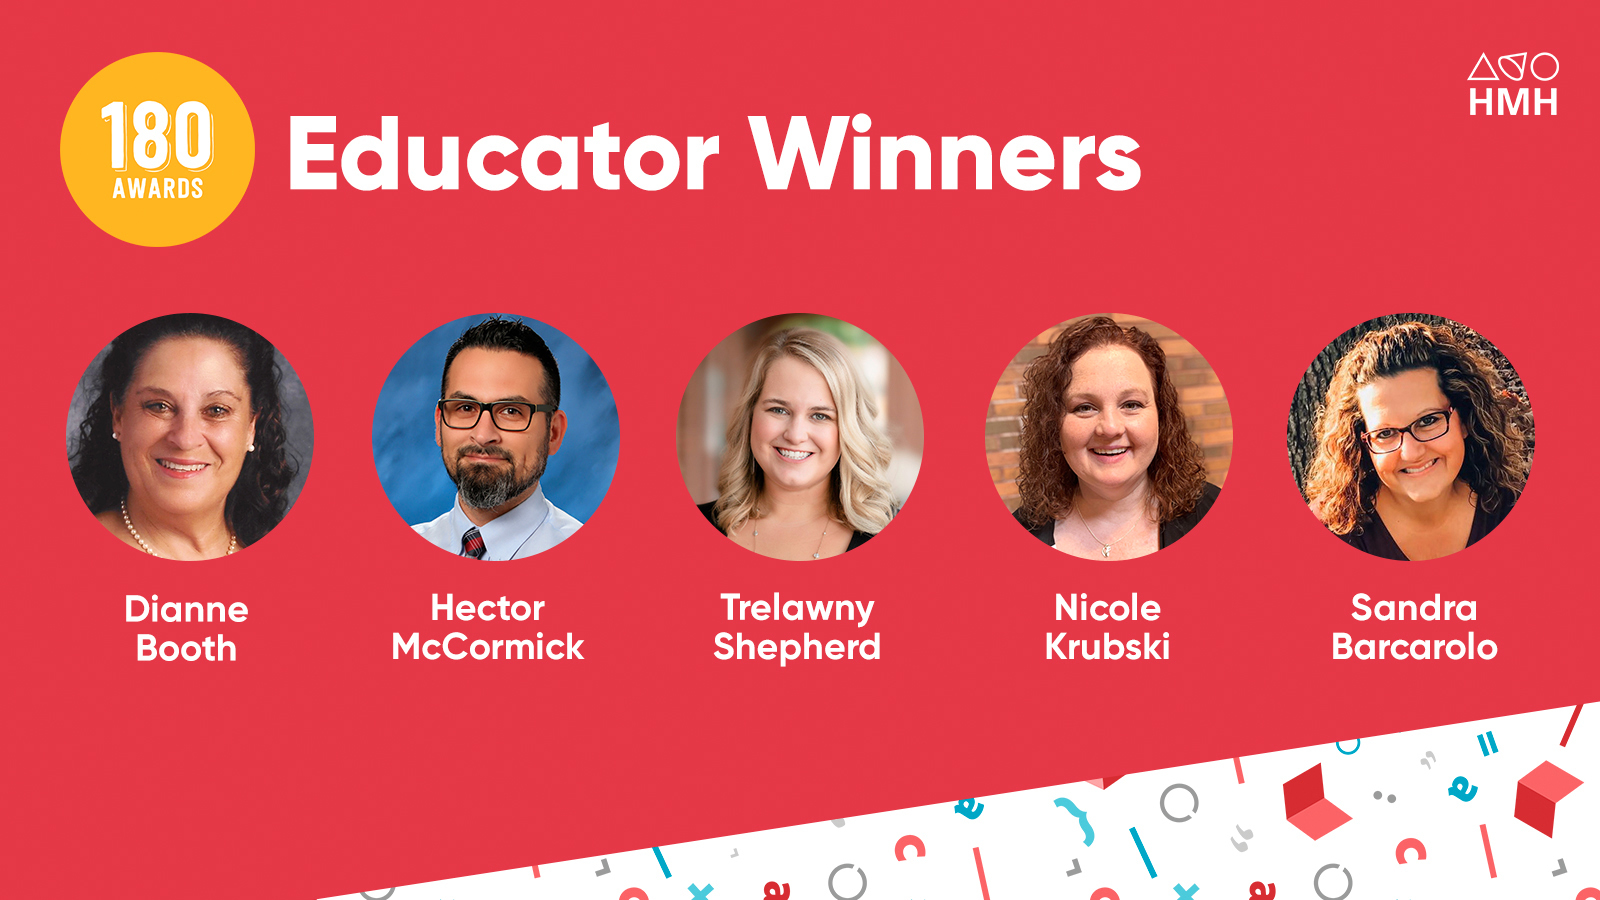 HMH Honors Five Educators Who Helped Striving Students Succeed